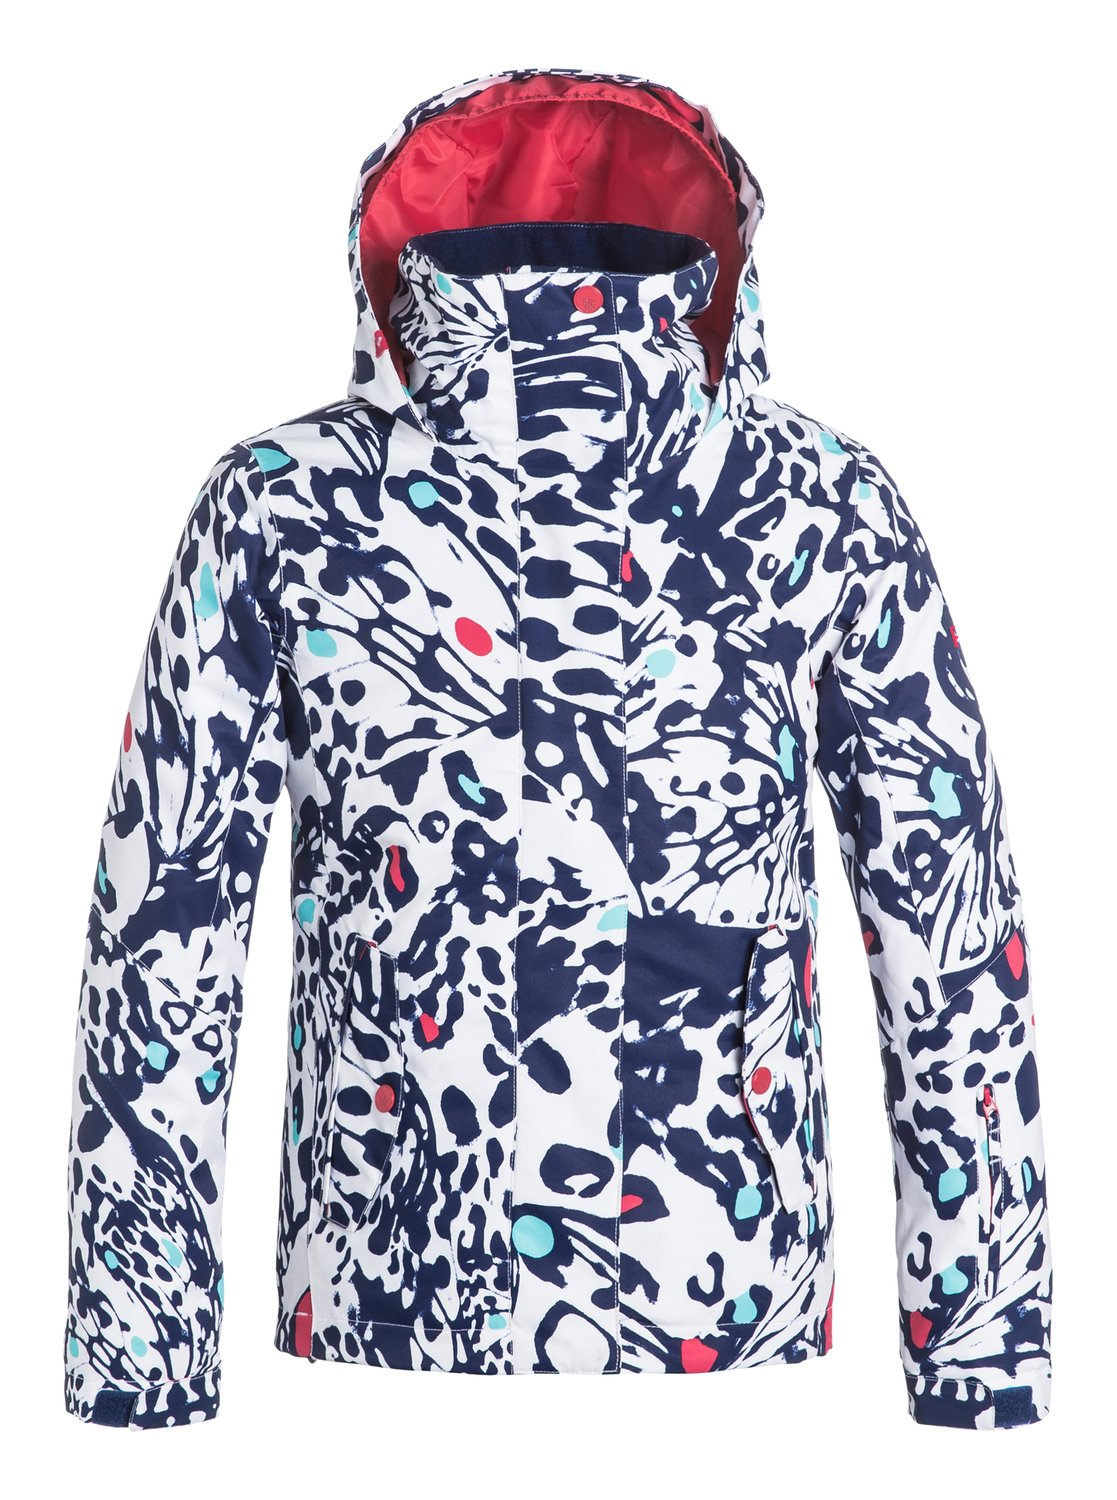 Сноубордическая детская куртка ROXY JettyStandout on the slopes with the ROXY Jettys bold prints. This snow jacket for girls has been crafted with 10K ROXY DryFlight® technology waterproofing for reliable waterproof and breathable protection. An easy-to-wear regular fit allows space to layer and comes complete with Warmflight® insulation level 3 to keep you cosy on the coldest winter days.<br>